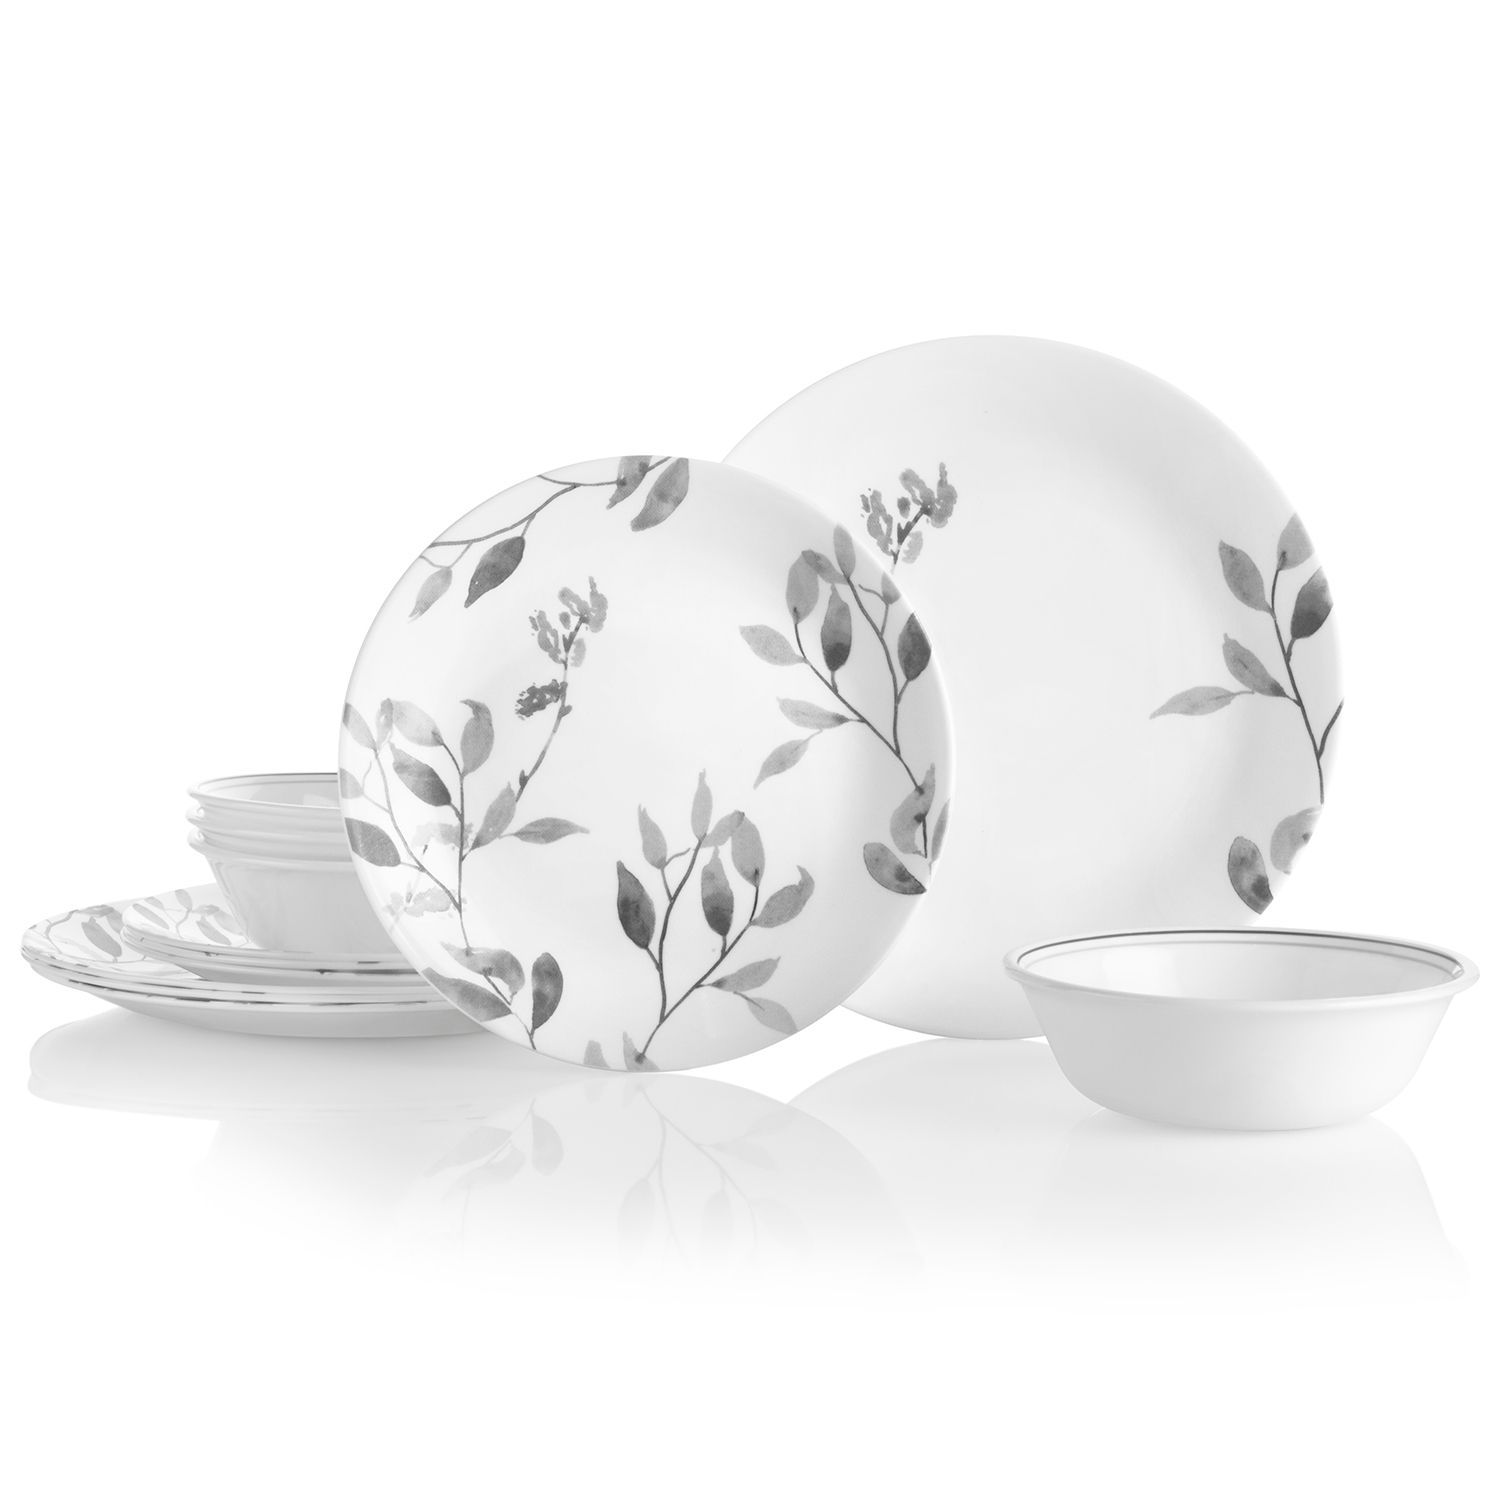 sc 1 st  Kohlu0027s & Corelle Misty Leaves 12-pc. Dinnerware Set